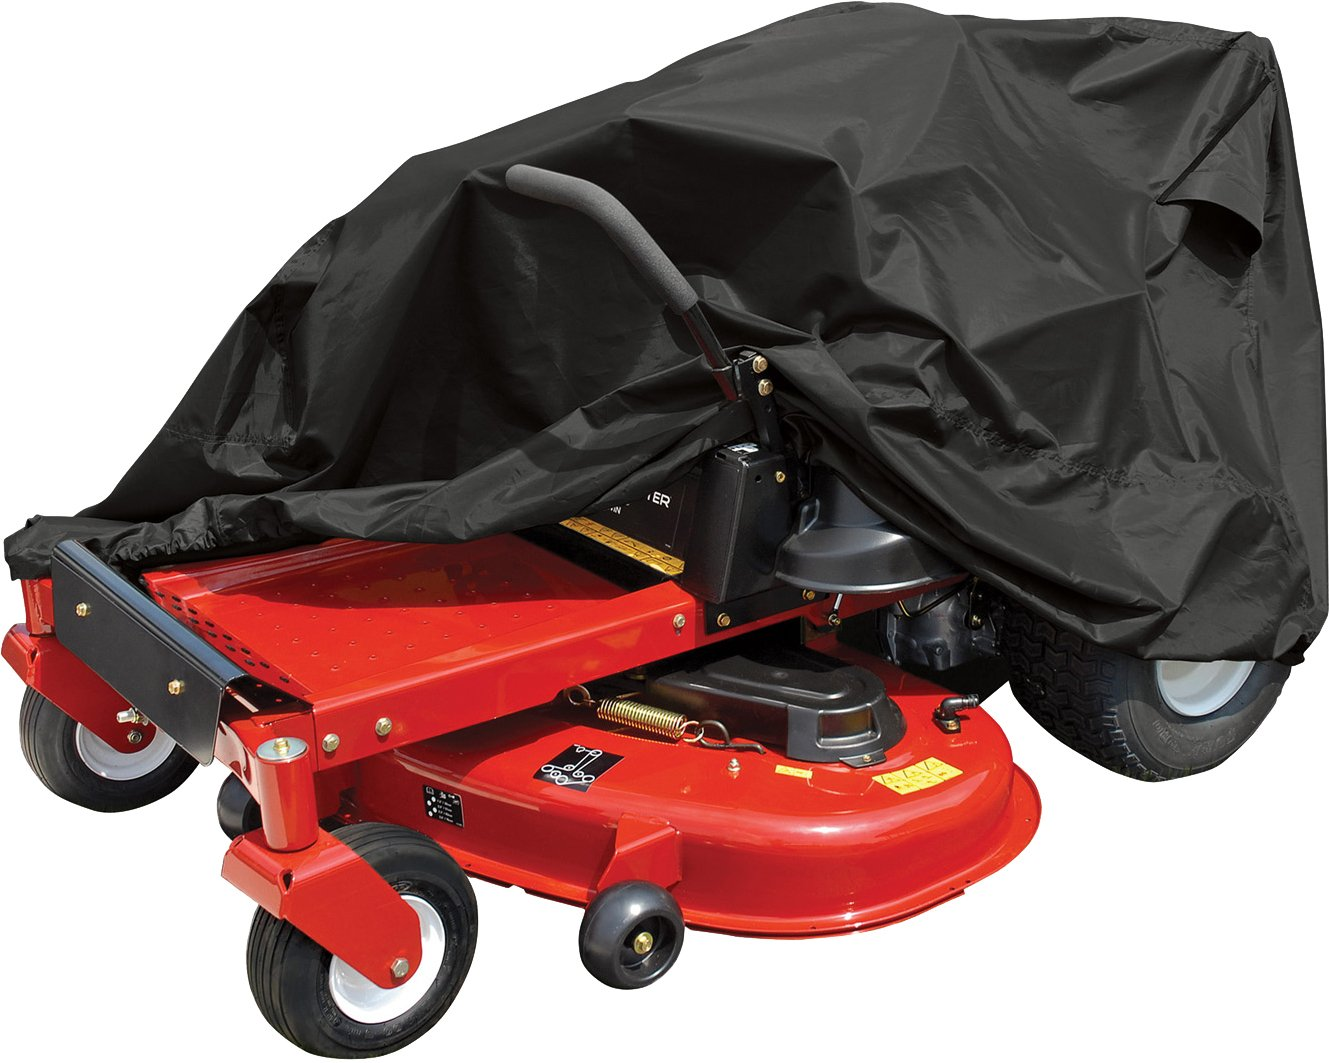 Amazon.com: Raider 02-7730 SX-Series Weather and UV-Resistant Zero-Turn Lawn Tractor Storage Cover: Automotive